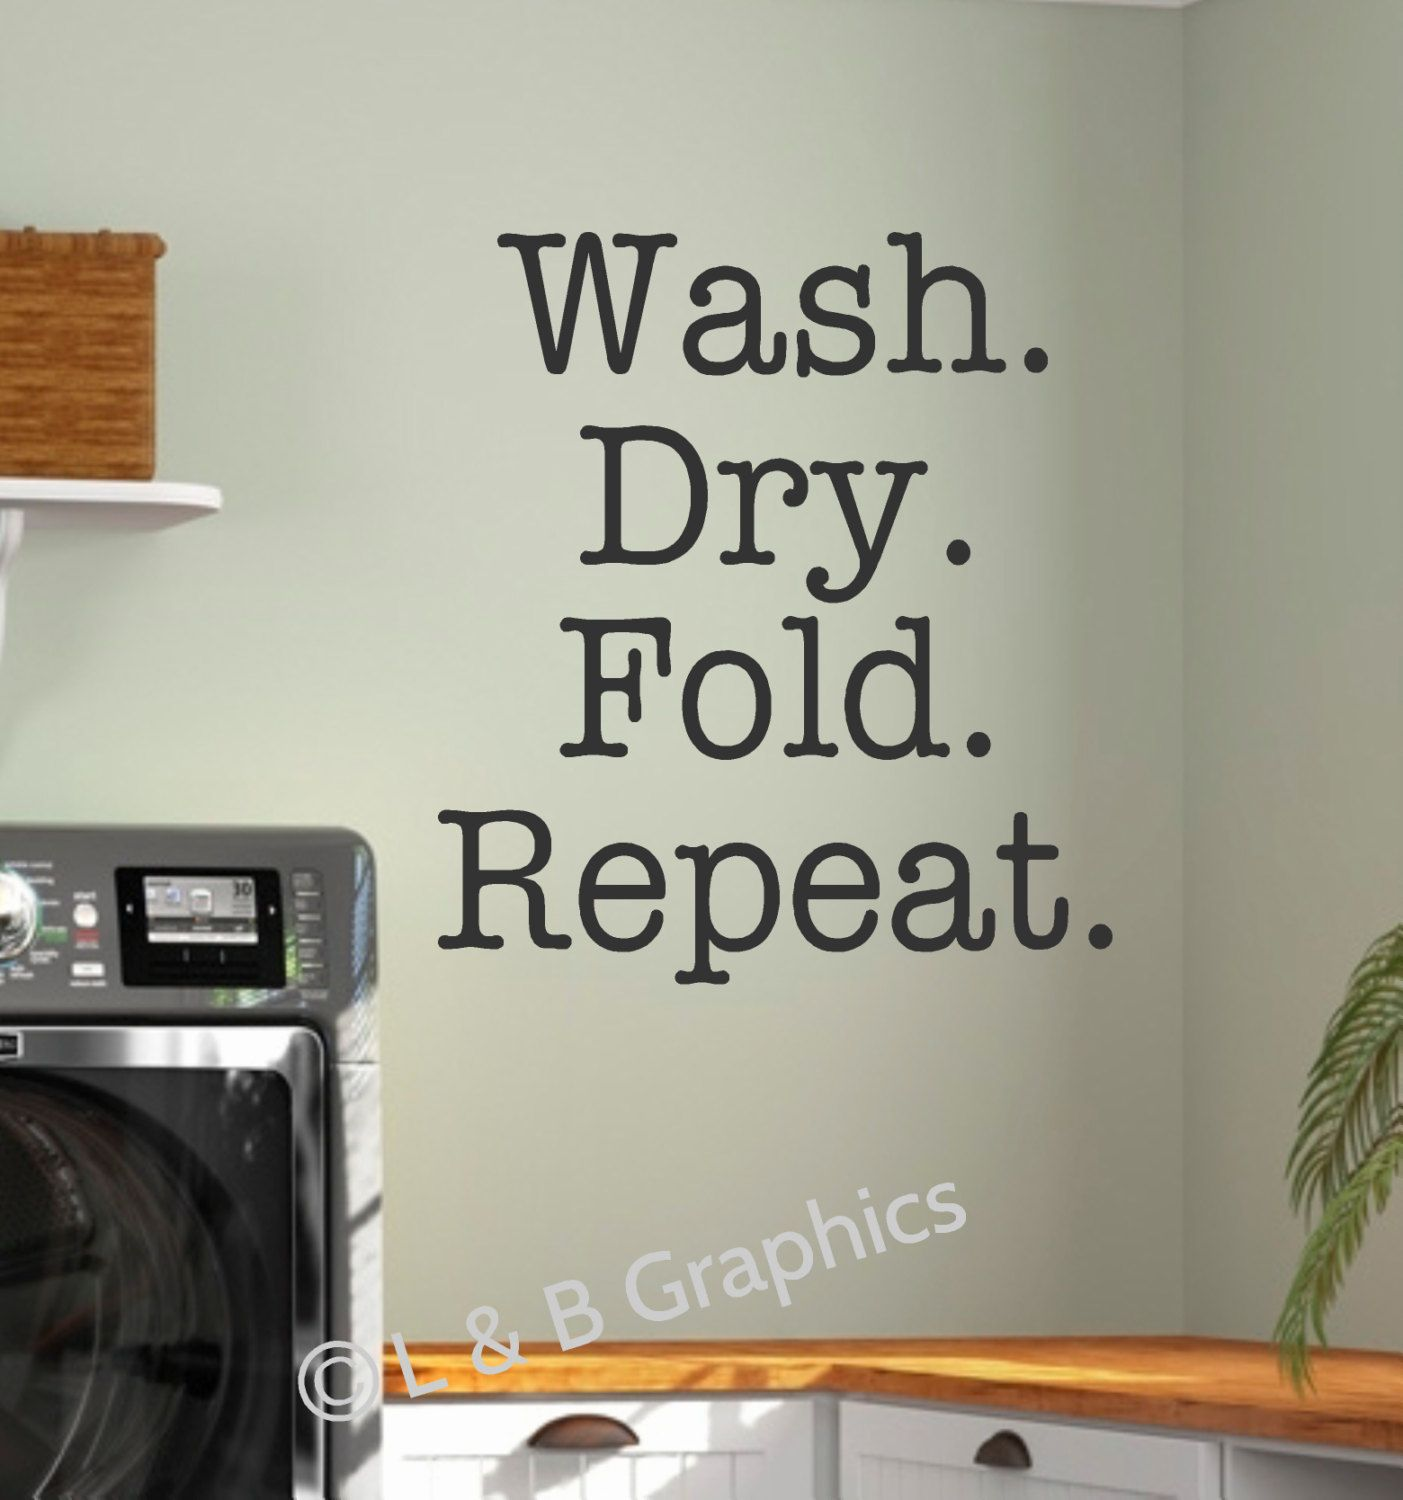 Laundry Room Vinyl Wall Decal Wash Dry Fold Repeat Decor Lettering